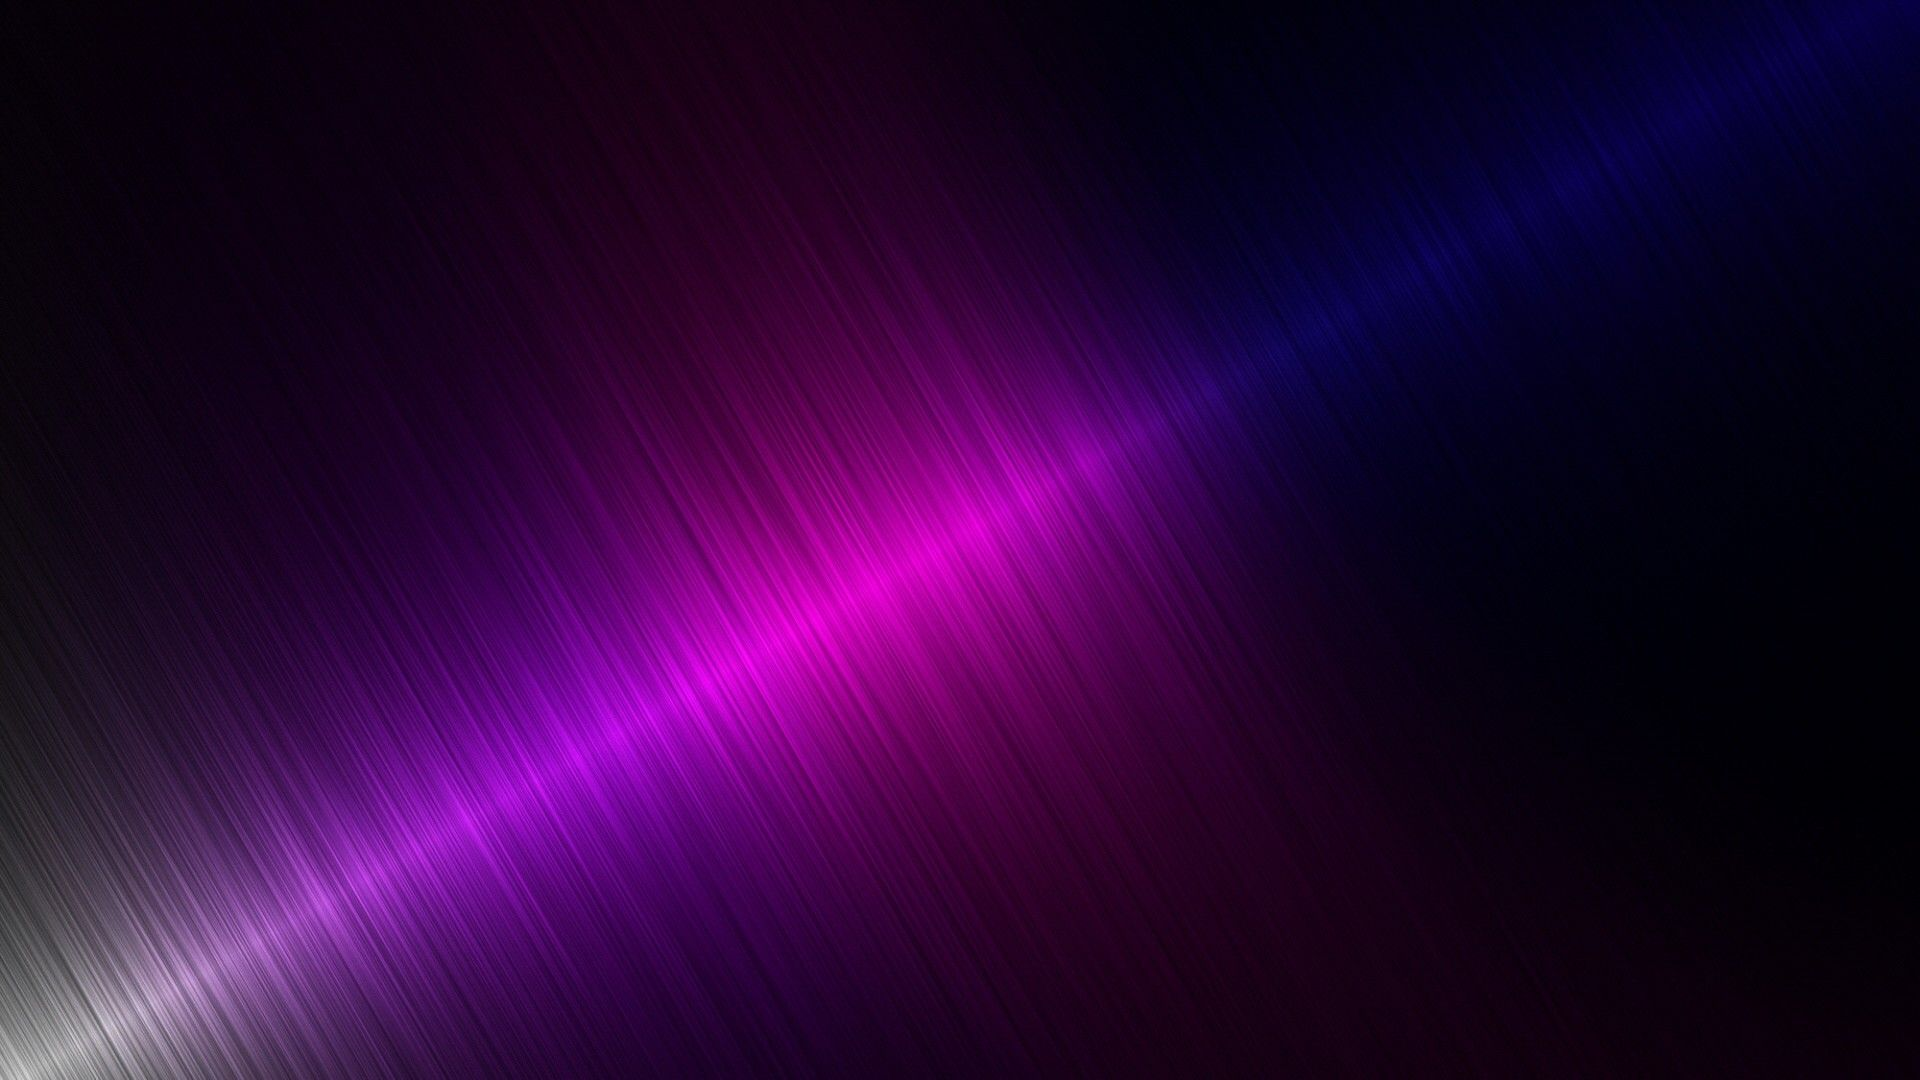 Desktop Wallpaper 1920x1080 1920x1080 Brushed Purple Desktop Pc And Mac Wallpaper Purple Wallpaper Dark Purple Background Cool Purple Background